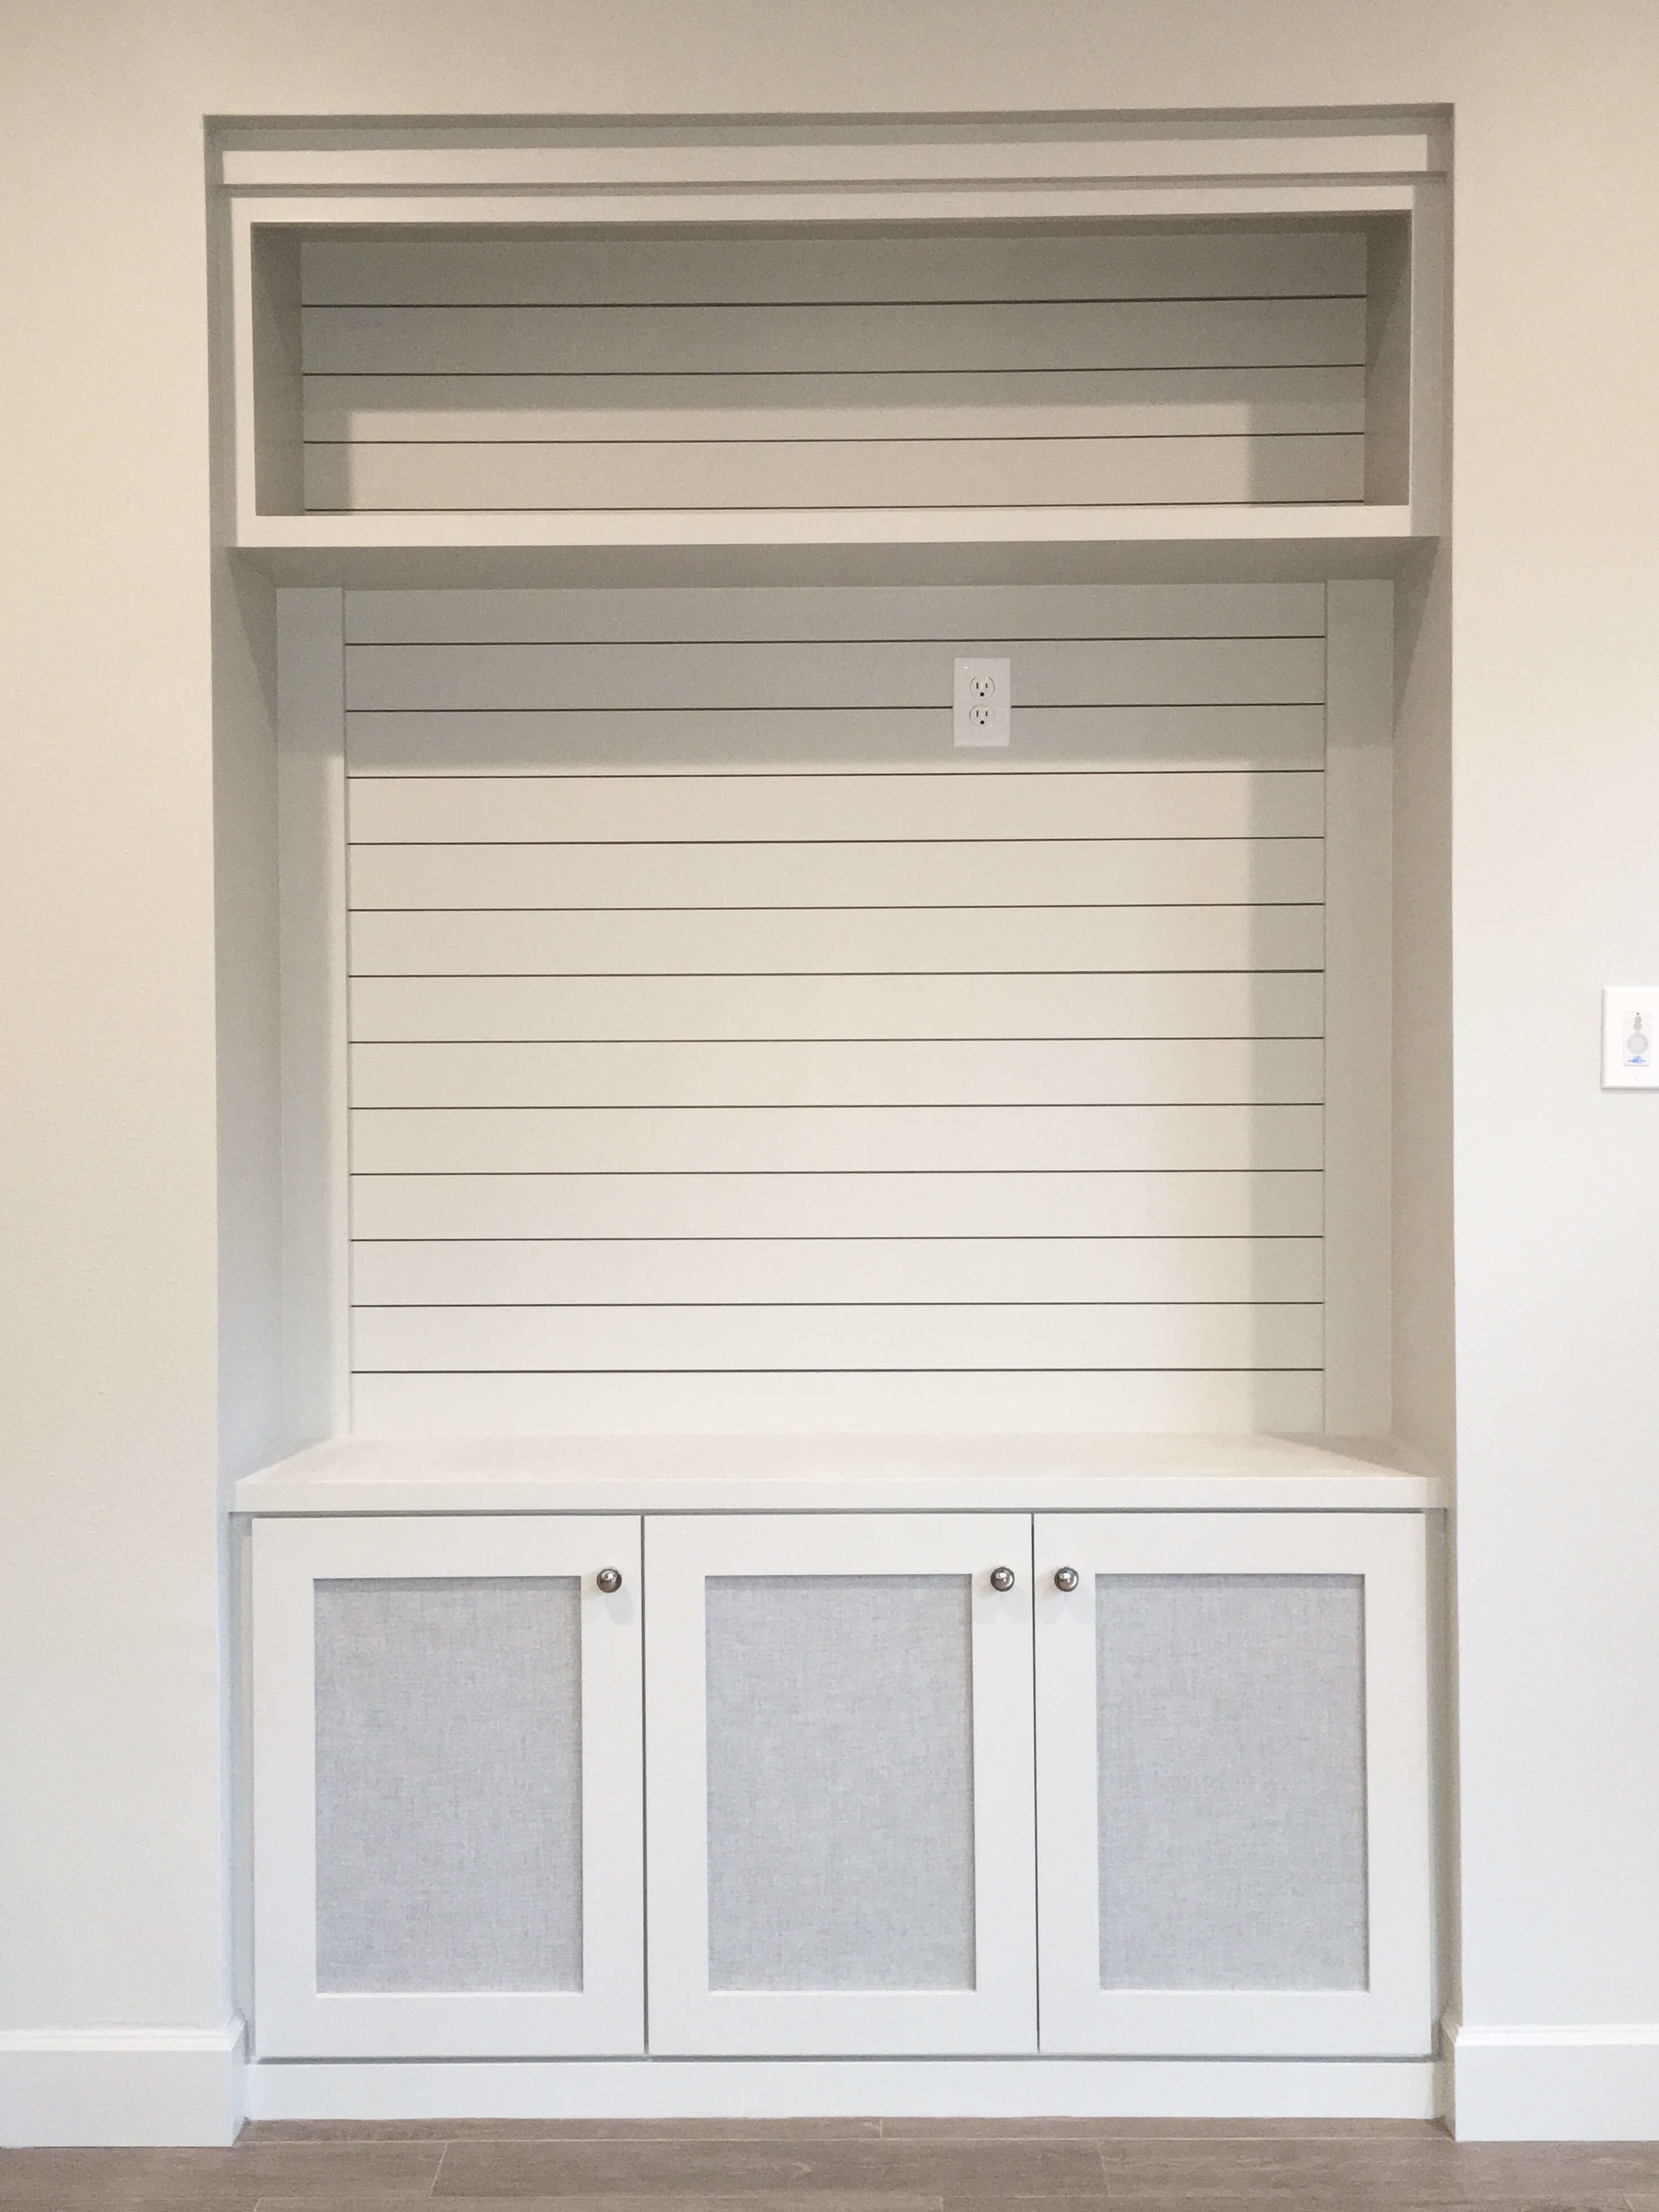 TV / Entertainment center built-in with shiplap back and speaker fabric panels